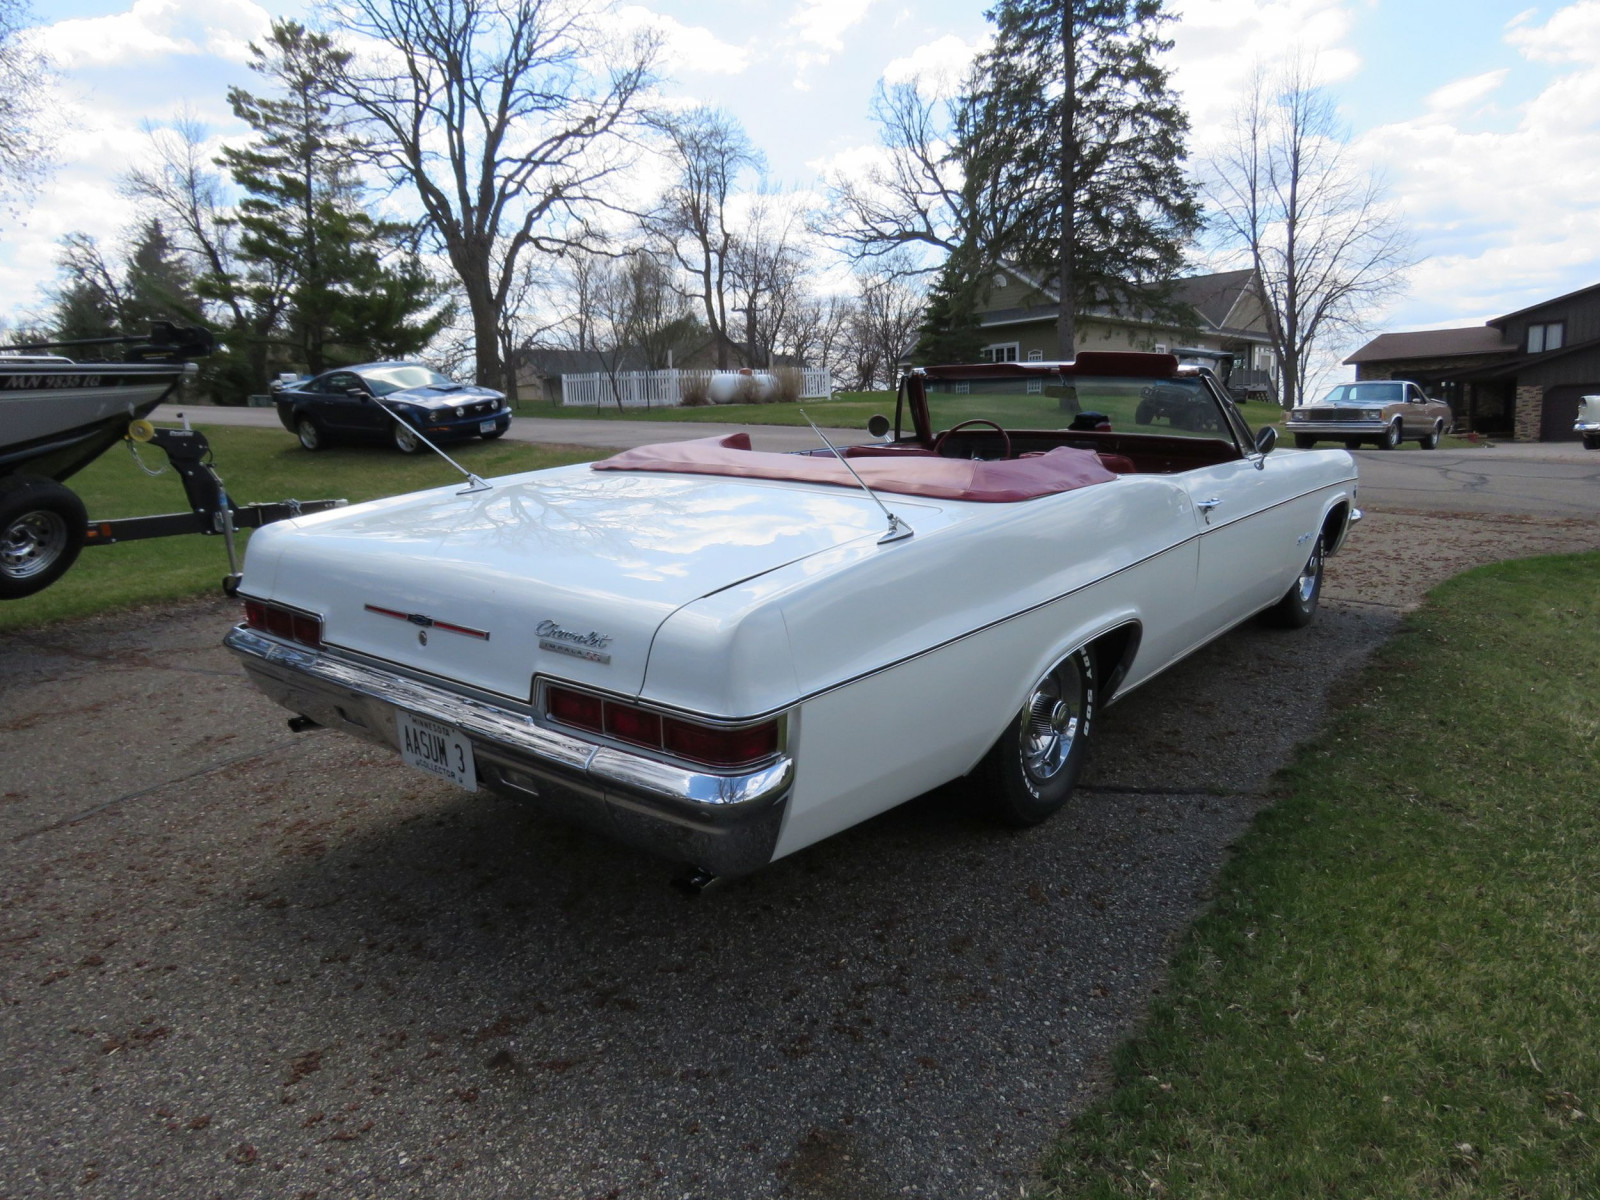 1966 Chevrolet Impala SS Convertible - Image 8